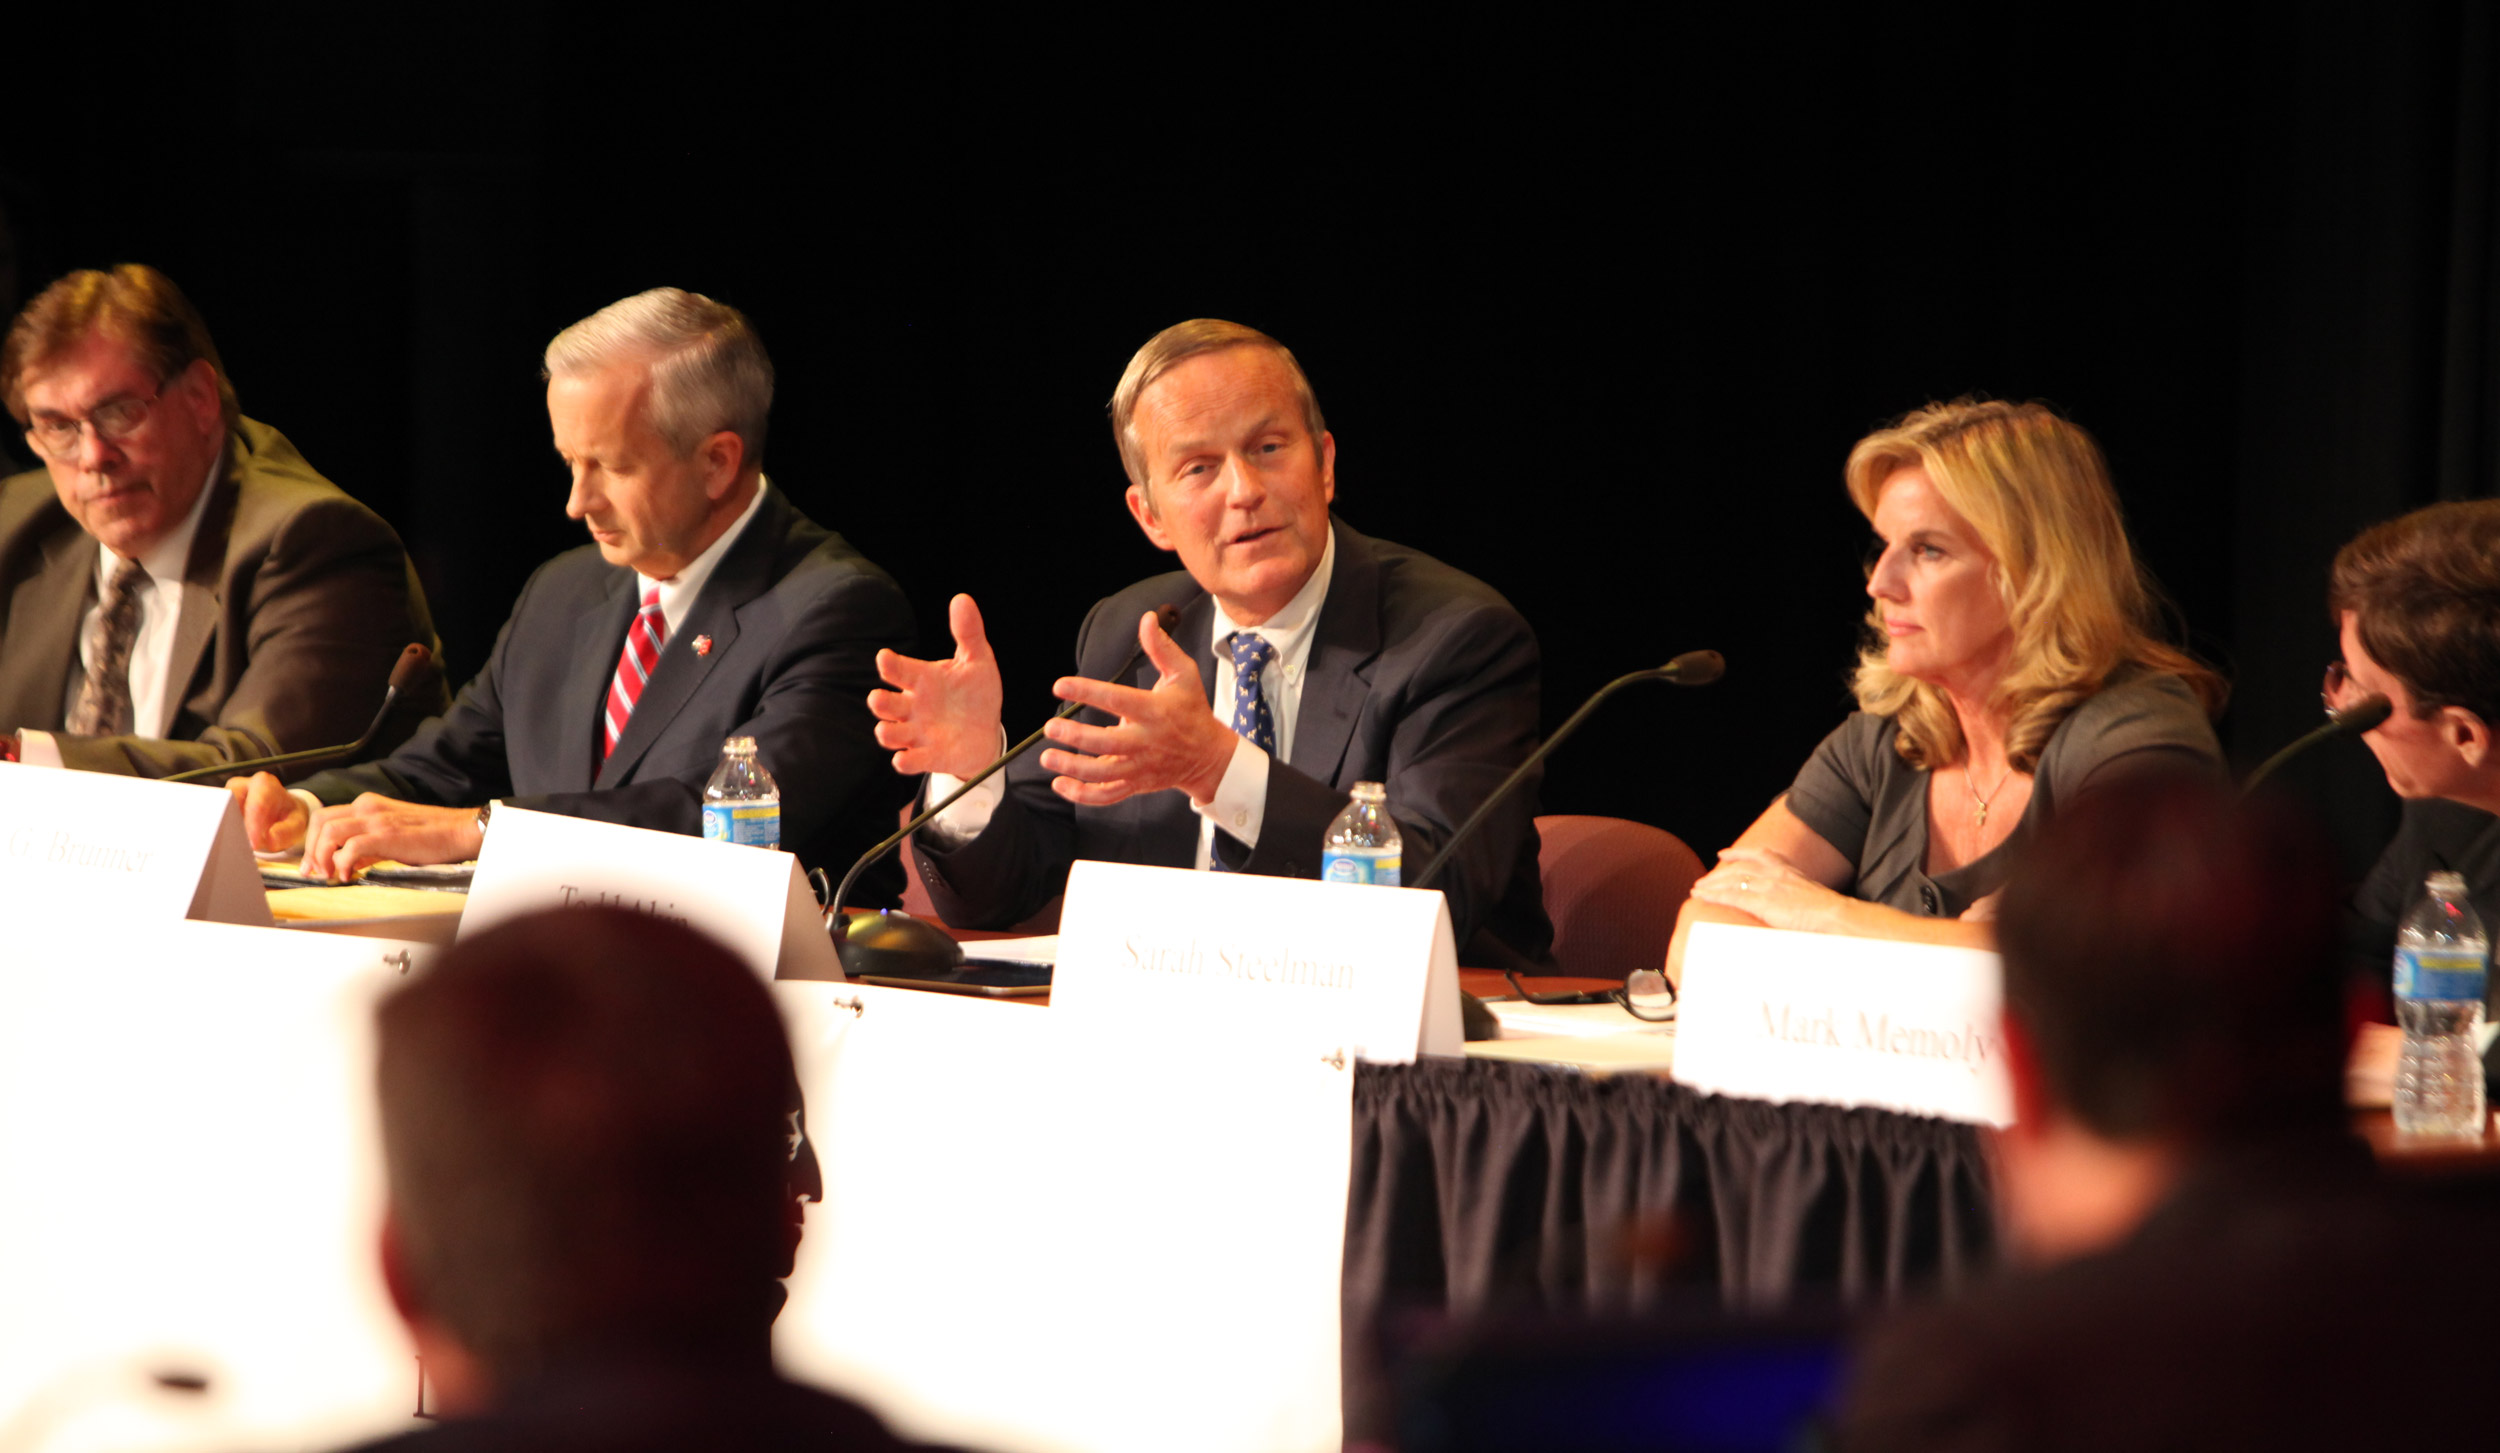 At the Willard, Mo., debate., Todd Akin gestures while answering. To his left, John Brunner. To his right, Sarah Steelman.